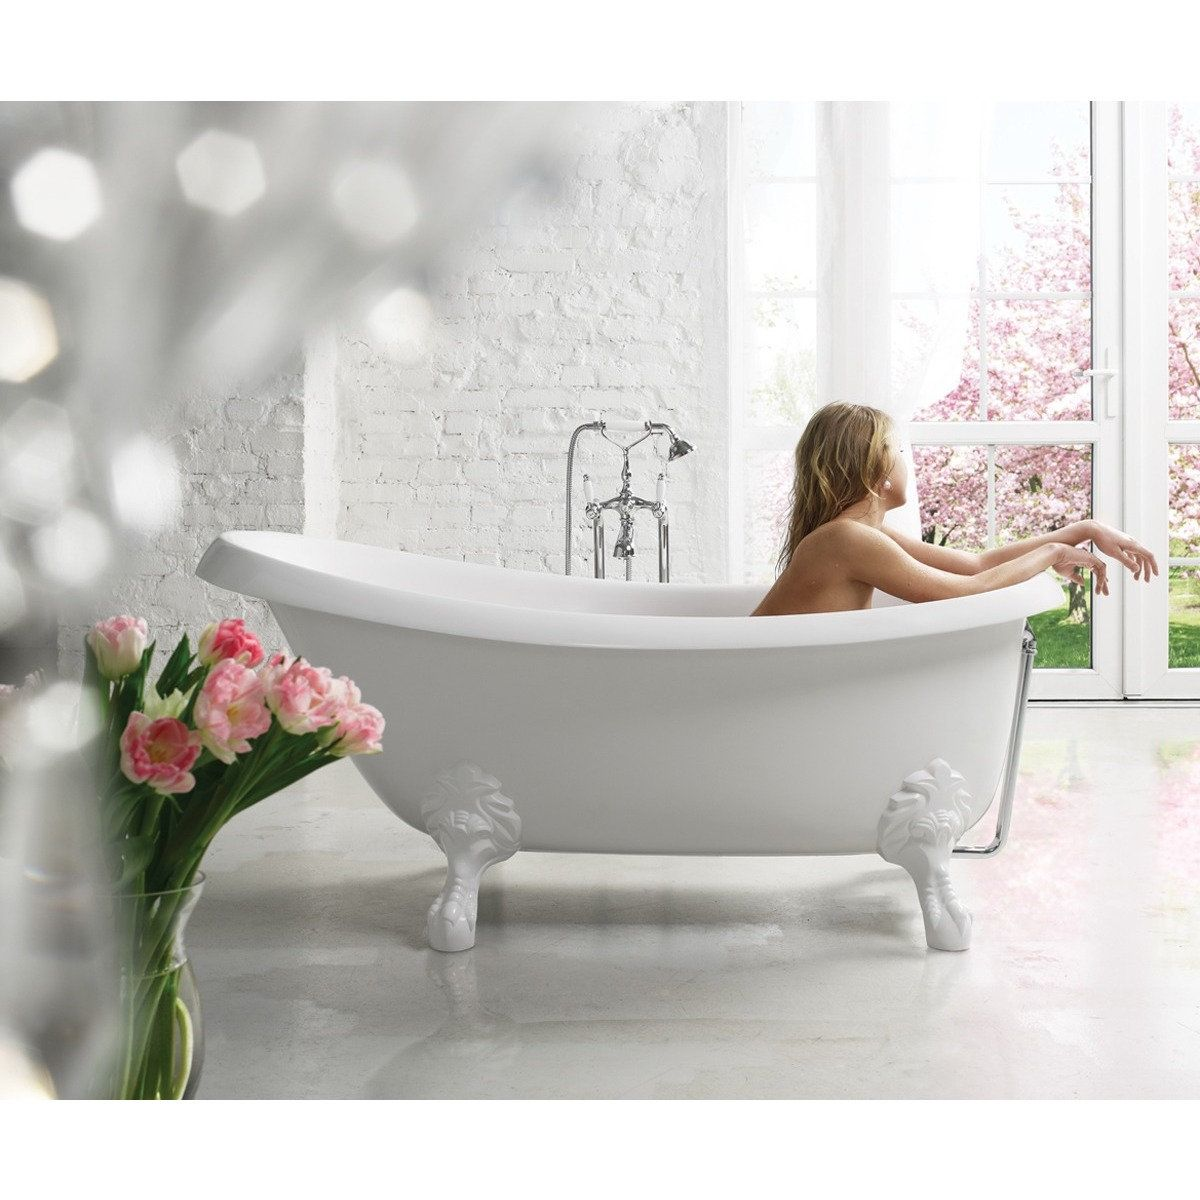 Buy claw foot tubs from overstock for everyday discount prices